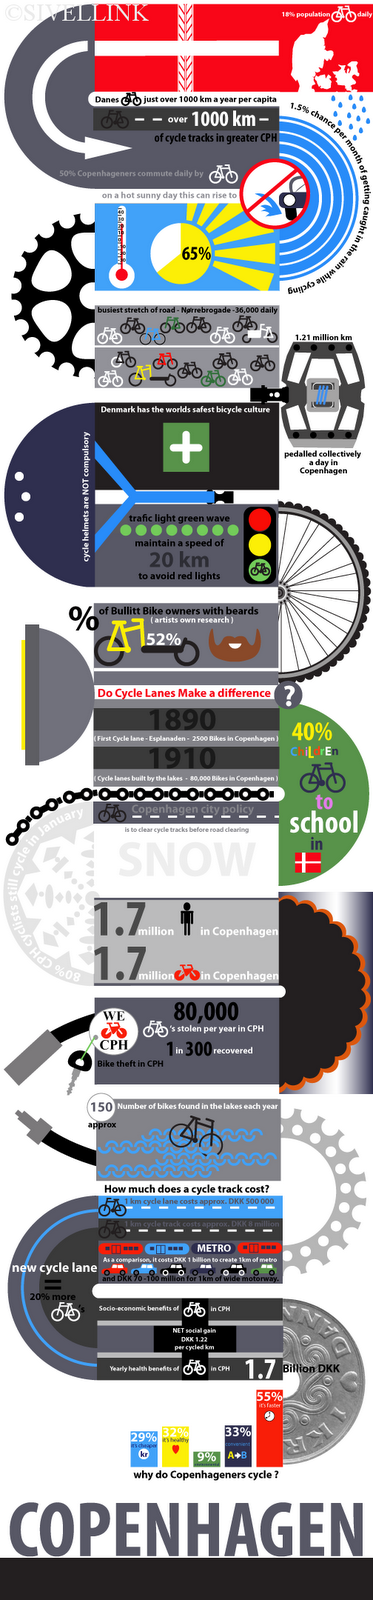 Emma Sivell's Copenhagen Cycling Infographic